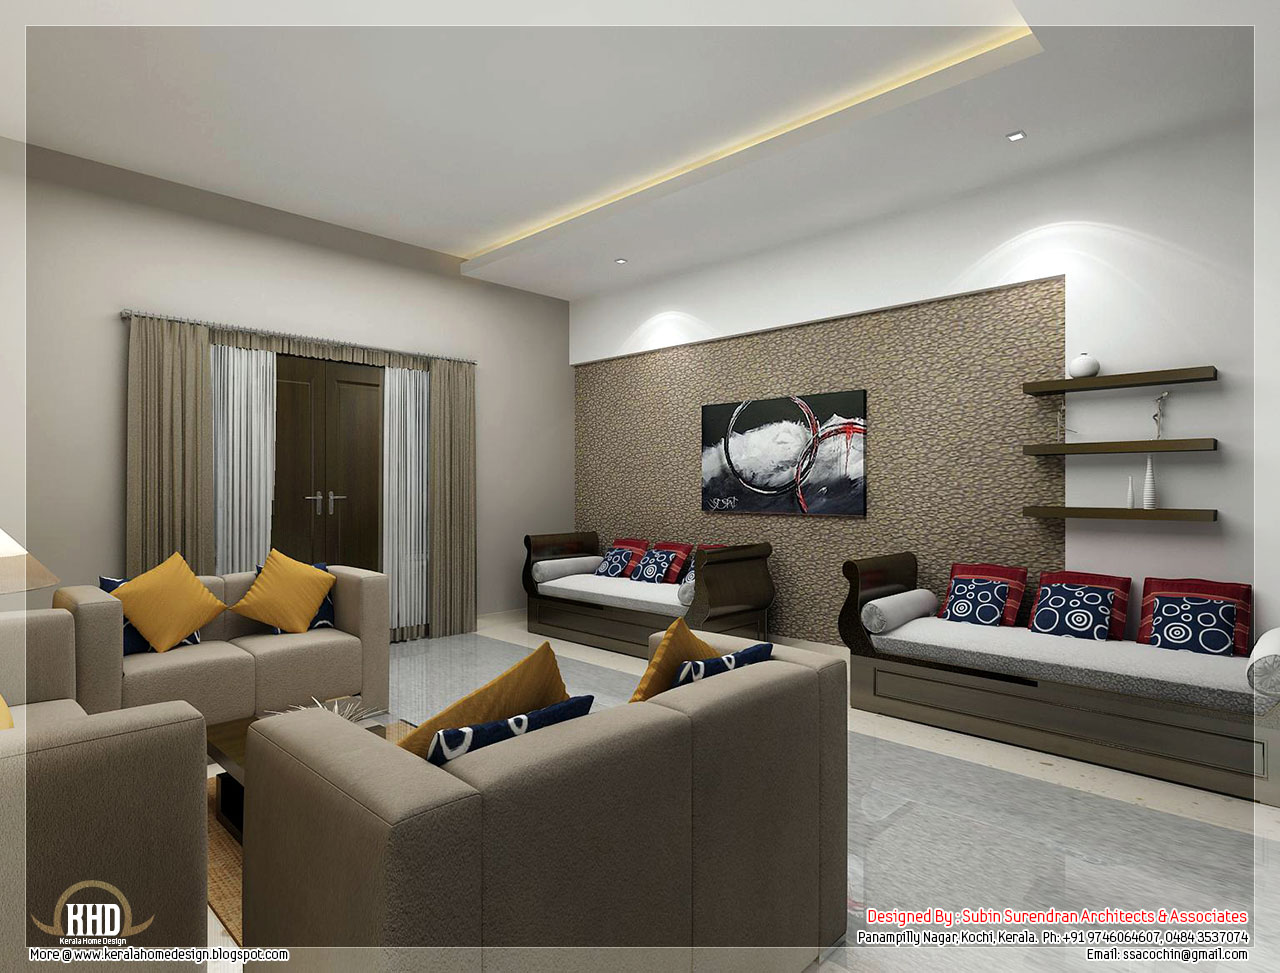 living room interior 07 - Get Living Room Modern Interior Design For Small House Background